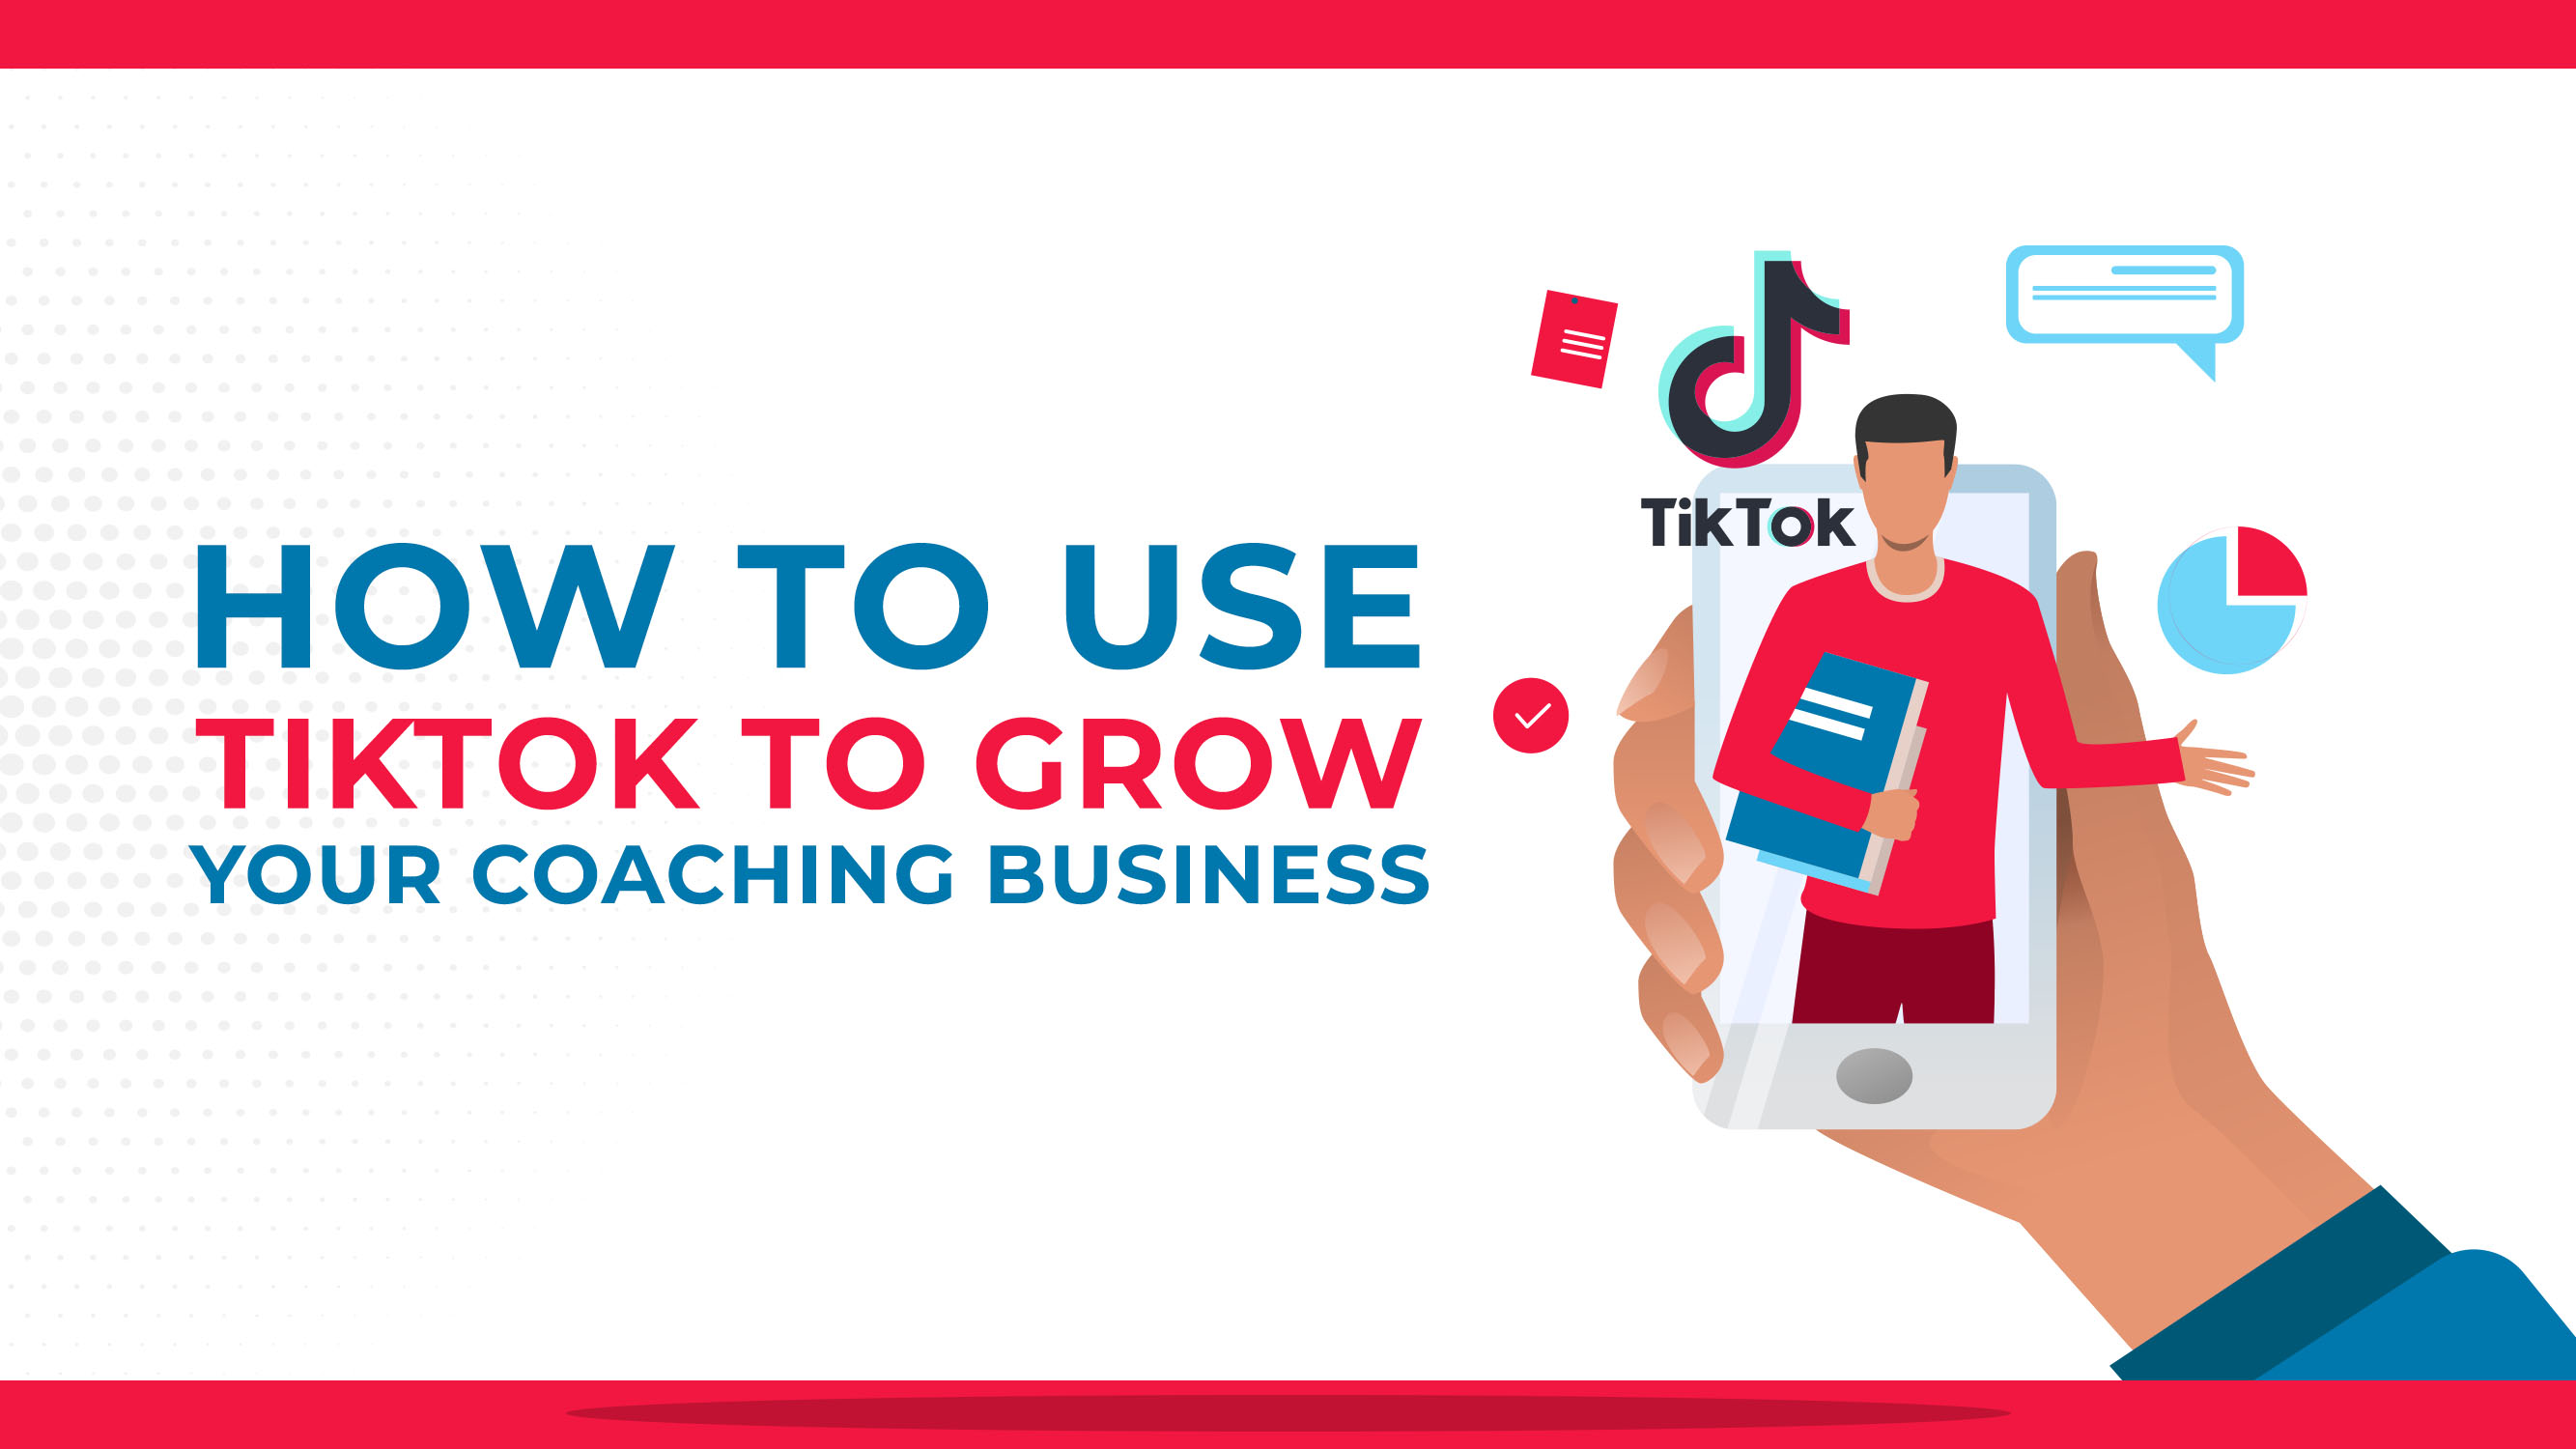 How To Use TikTok To Grow Your Coaching Business